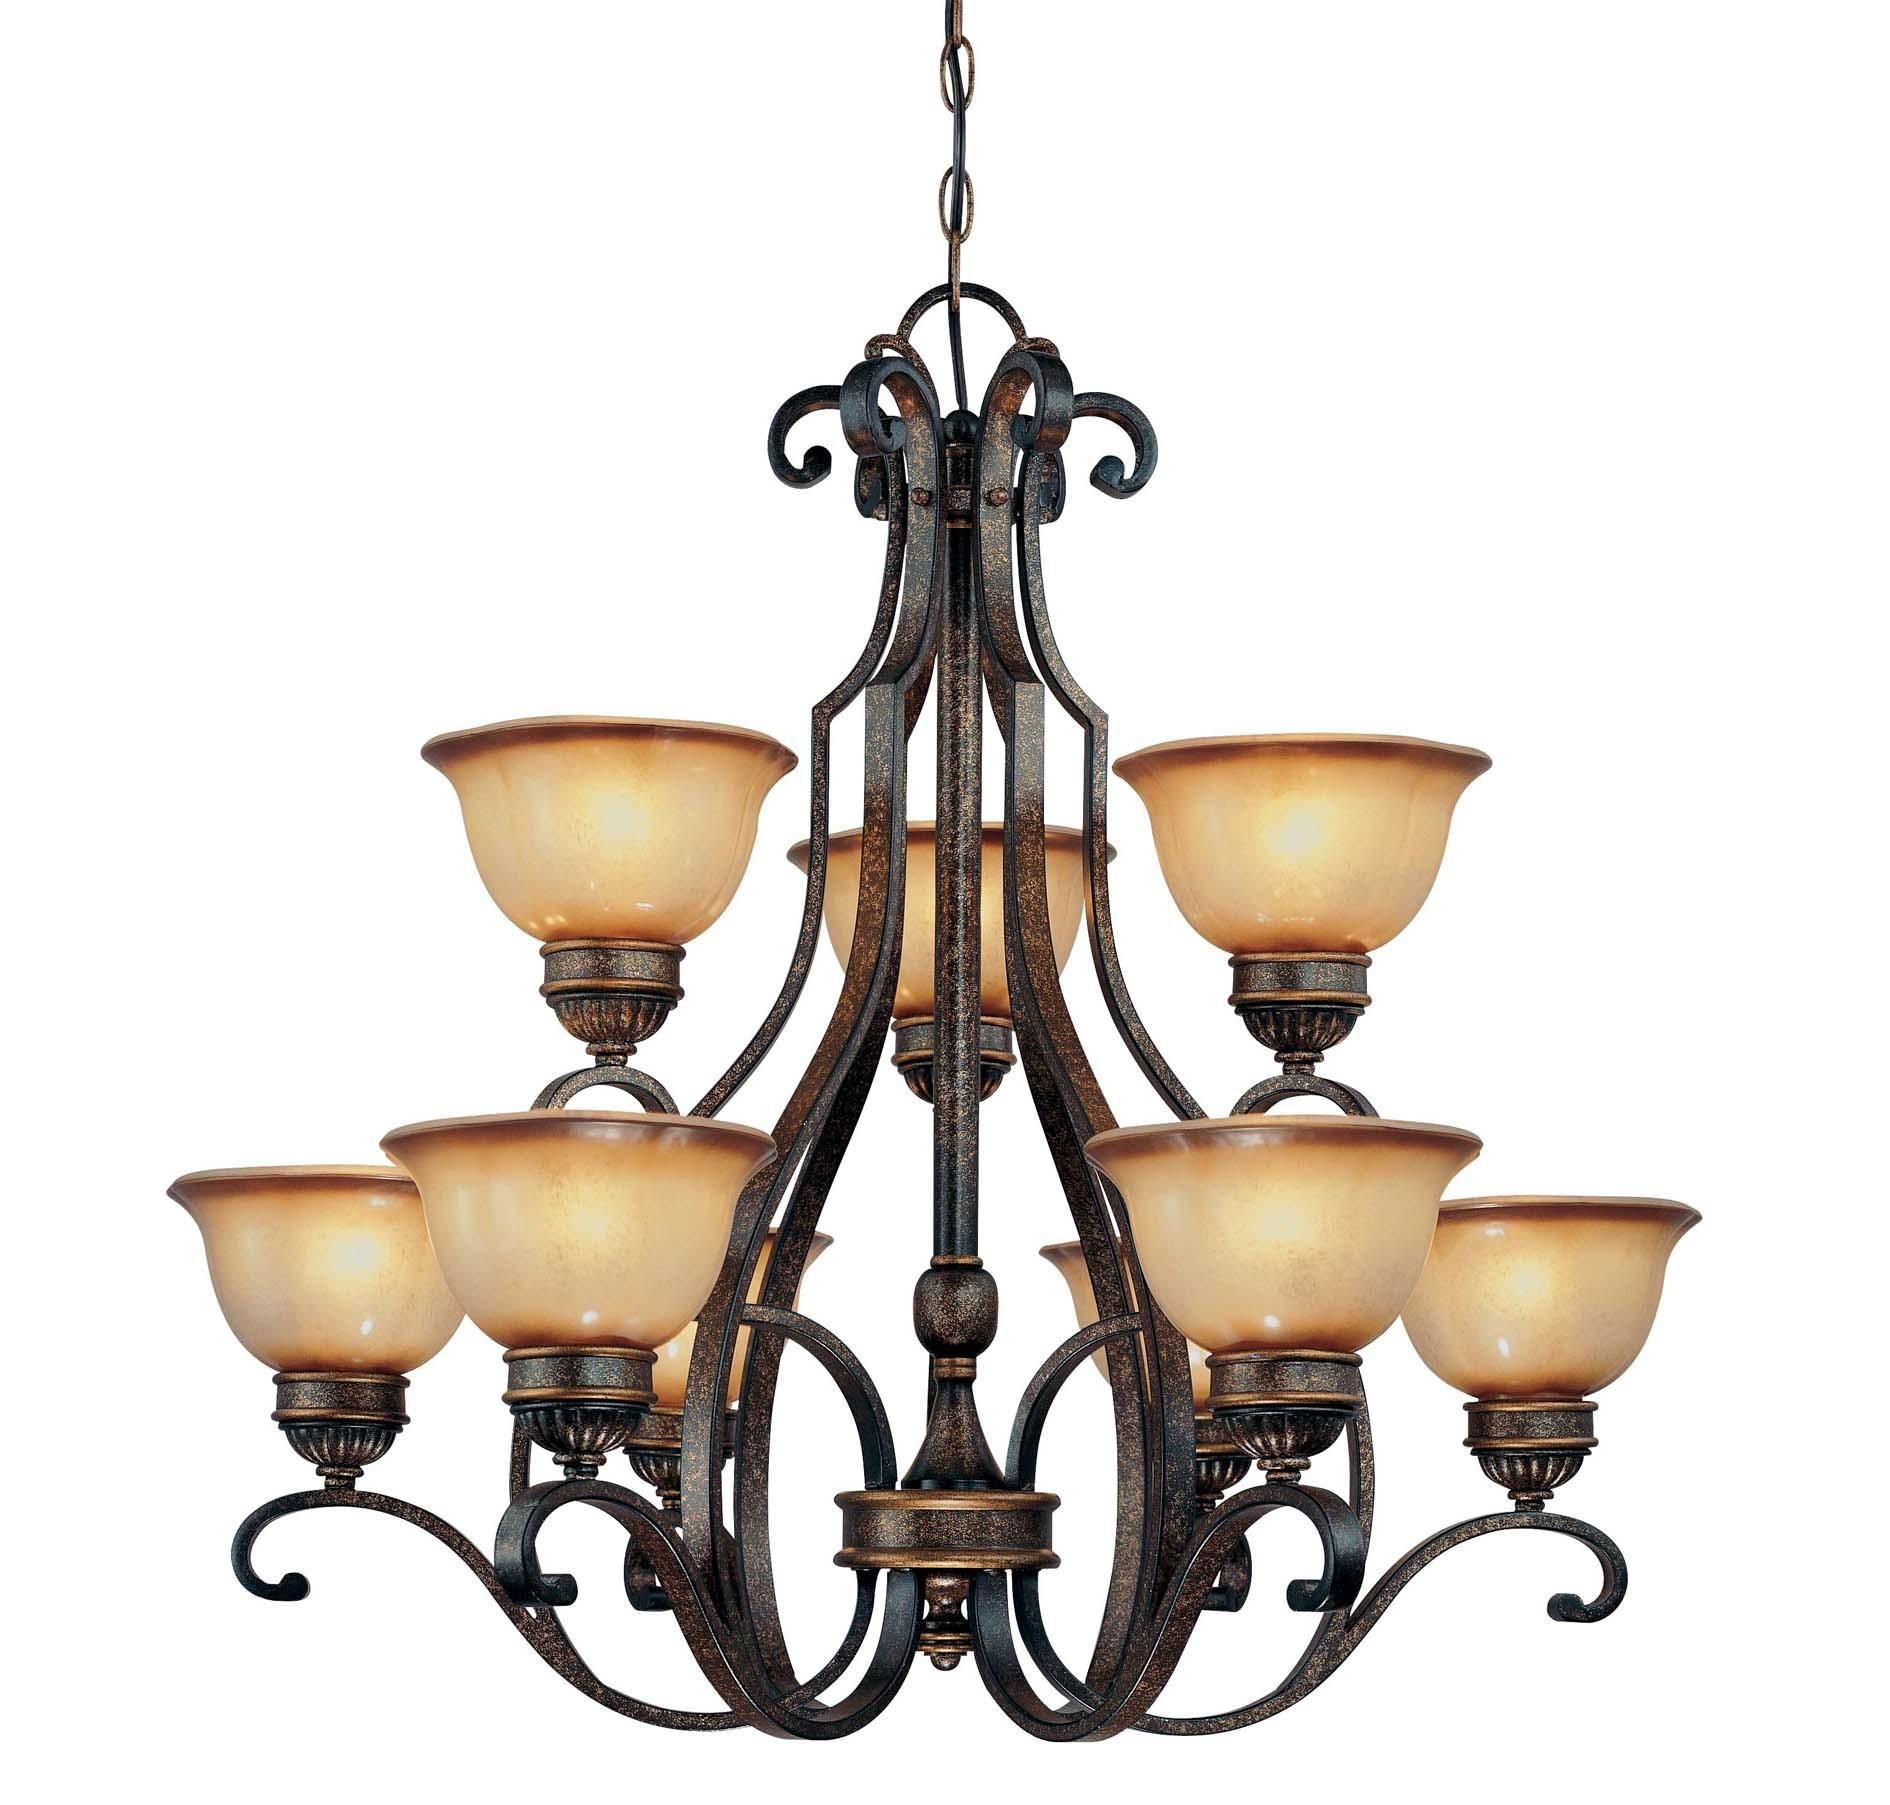 Minka lavery brompton bronze 9 light chandelier in brands minka minka lavery brompton bronze 9 light chandelier in brands minka lavery lighting minka mozeypictures Image collections